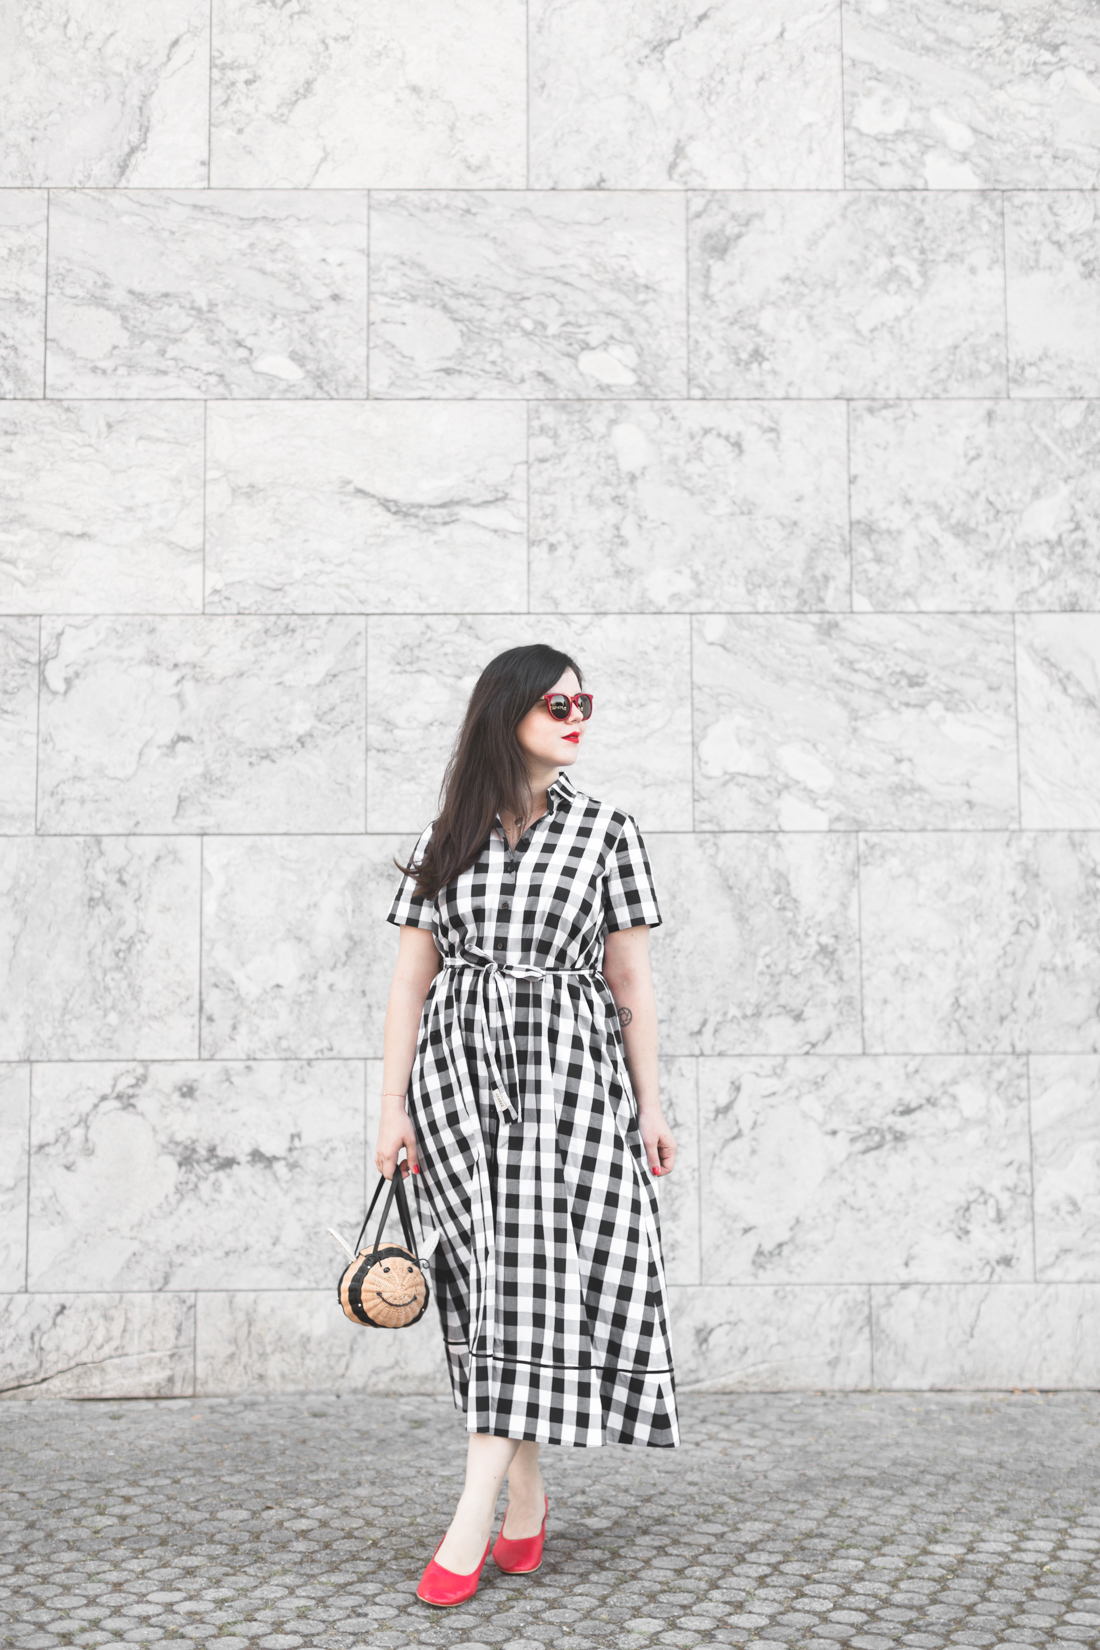 1100 gingham dress kate spade new york bumble bee bag - credit Pauline paulinefashionblog.com-1